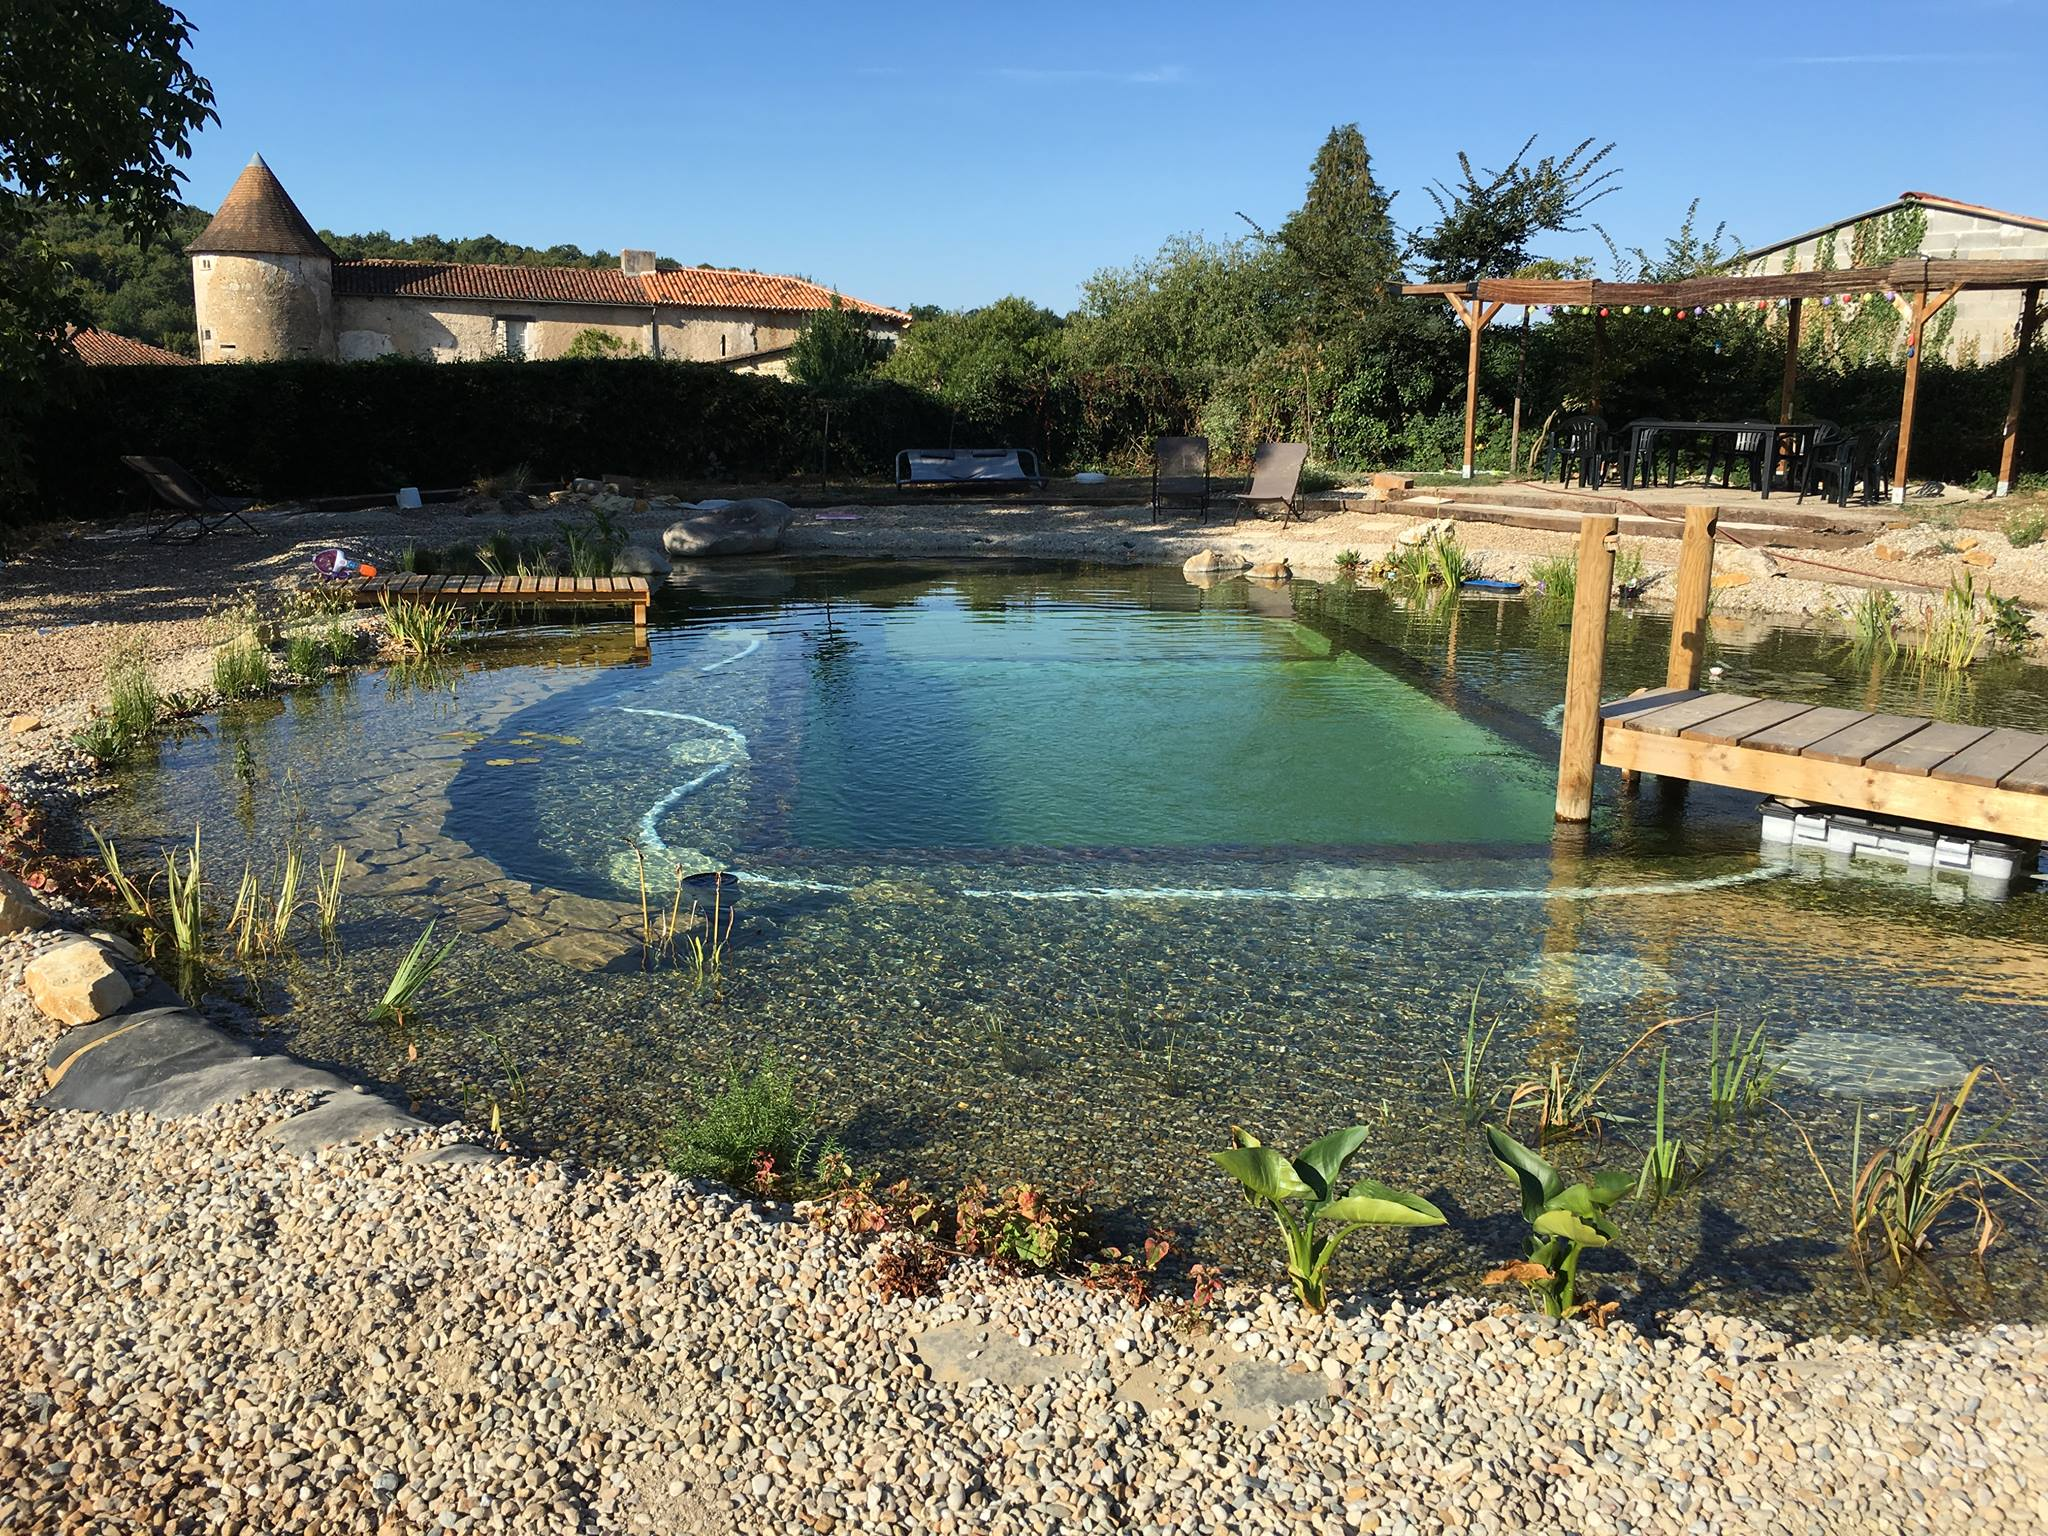 This pond was built by Beverly Easell and her family at a cost of E18,000, a saving of more than E100,000 over the quote from a natural pond company.